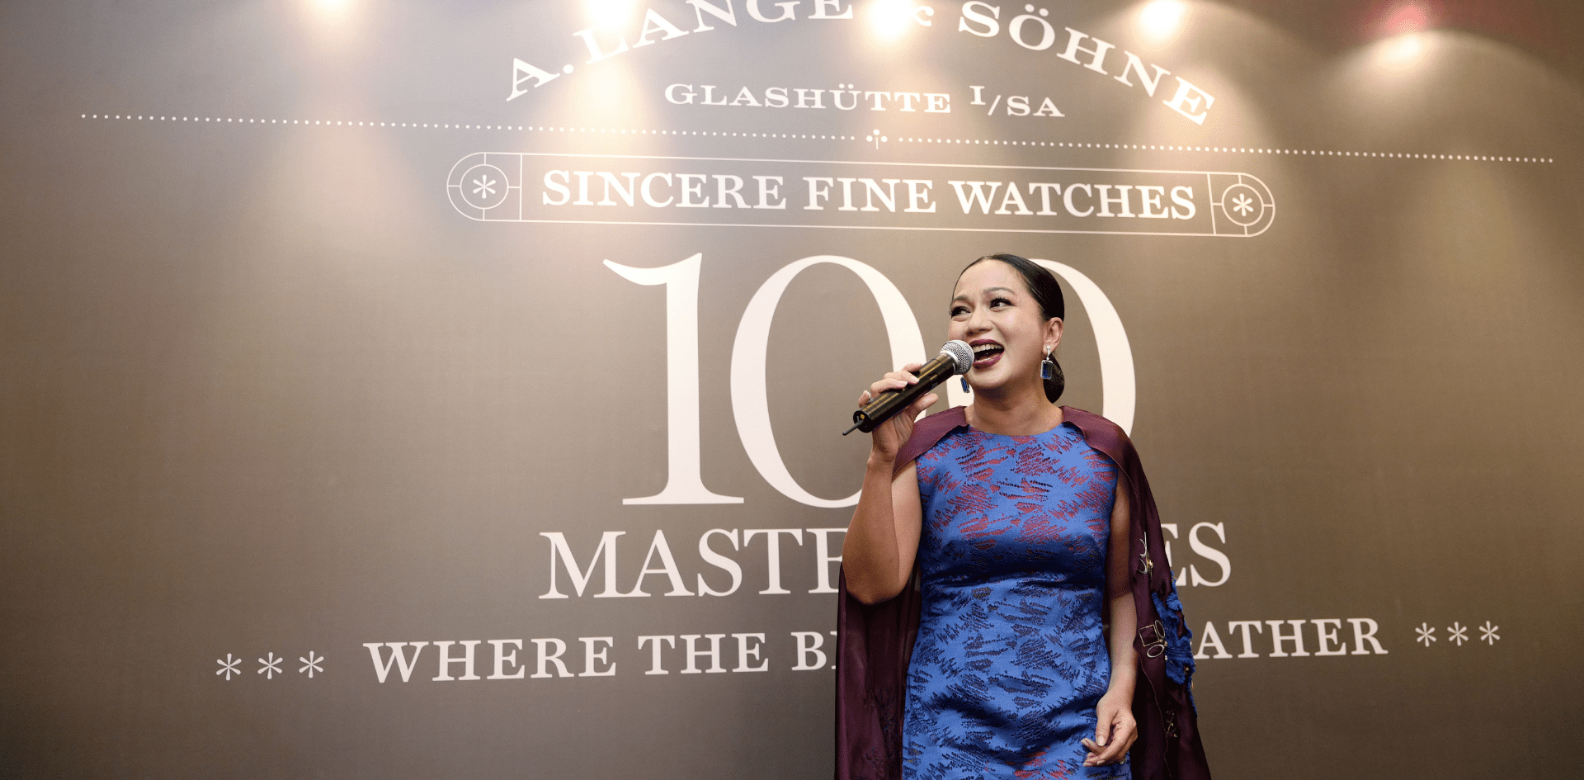 Sheila Majid performed at the exhibition opening (Photo: Sincere Fine Watches)